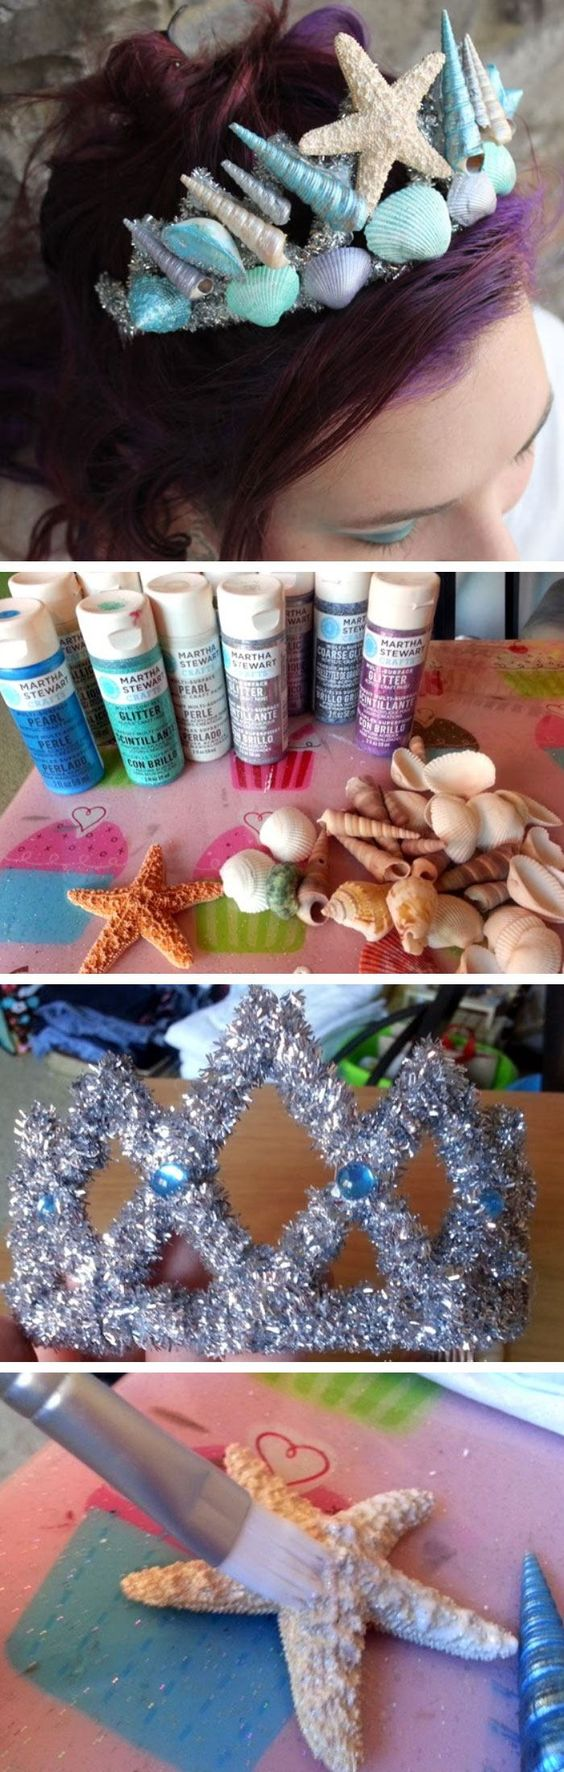 Mermaid Tiara for Mermaid Costume   Click Pic for 18 DIY Seashell Craft Ideas for the Home   Easy Seashell Decorating Ideas on a Budget: